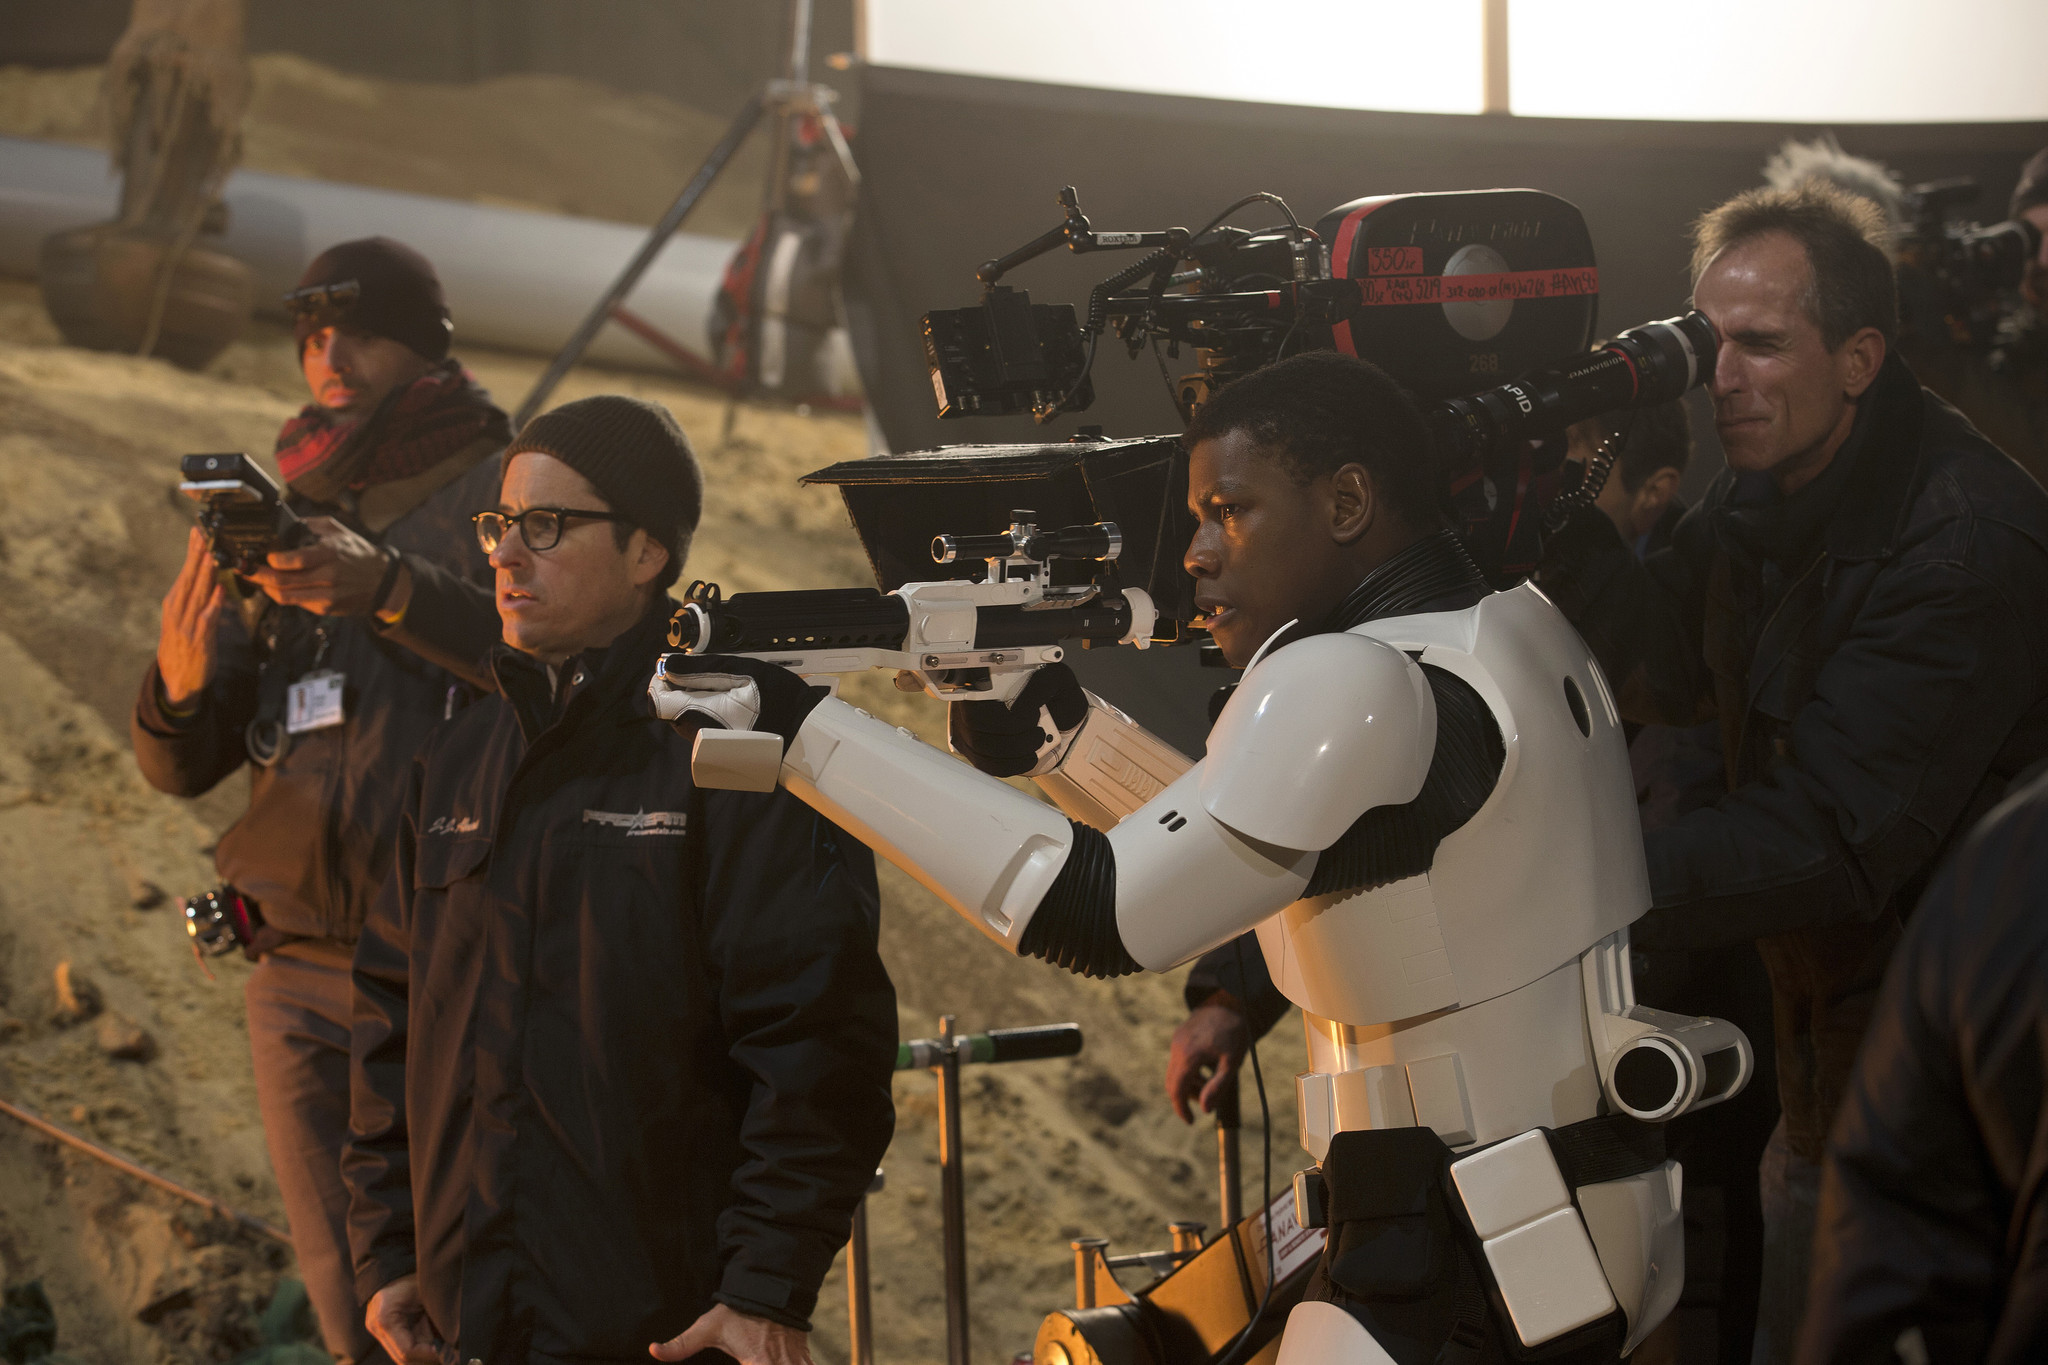 la-et-hc-star-wars-the-force-awakens-behind-the-scenes-images-20151202